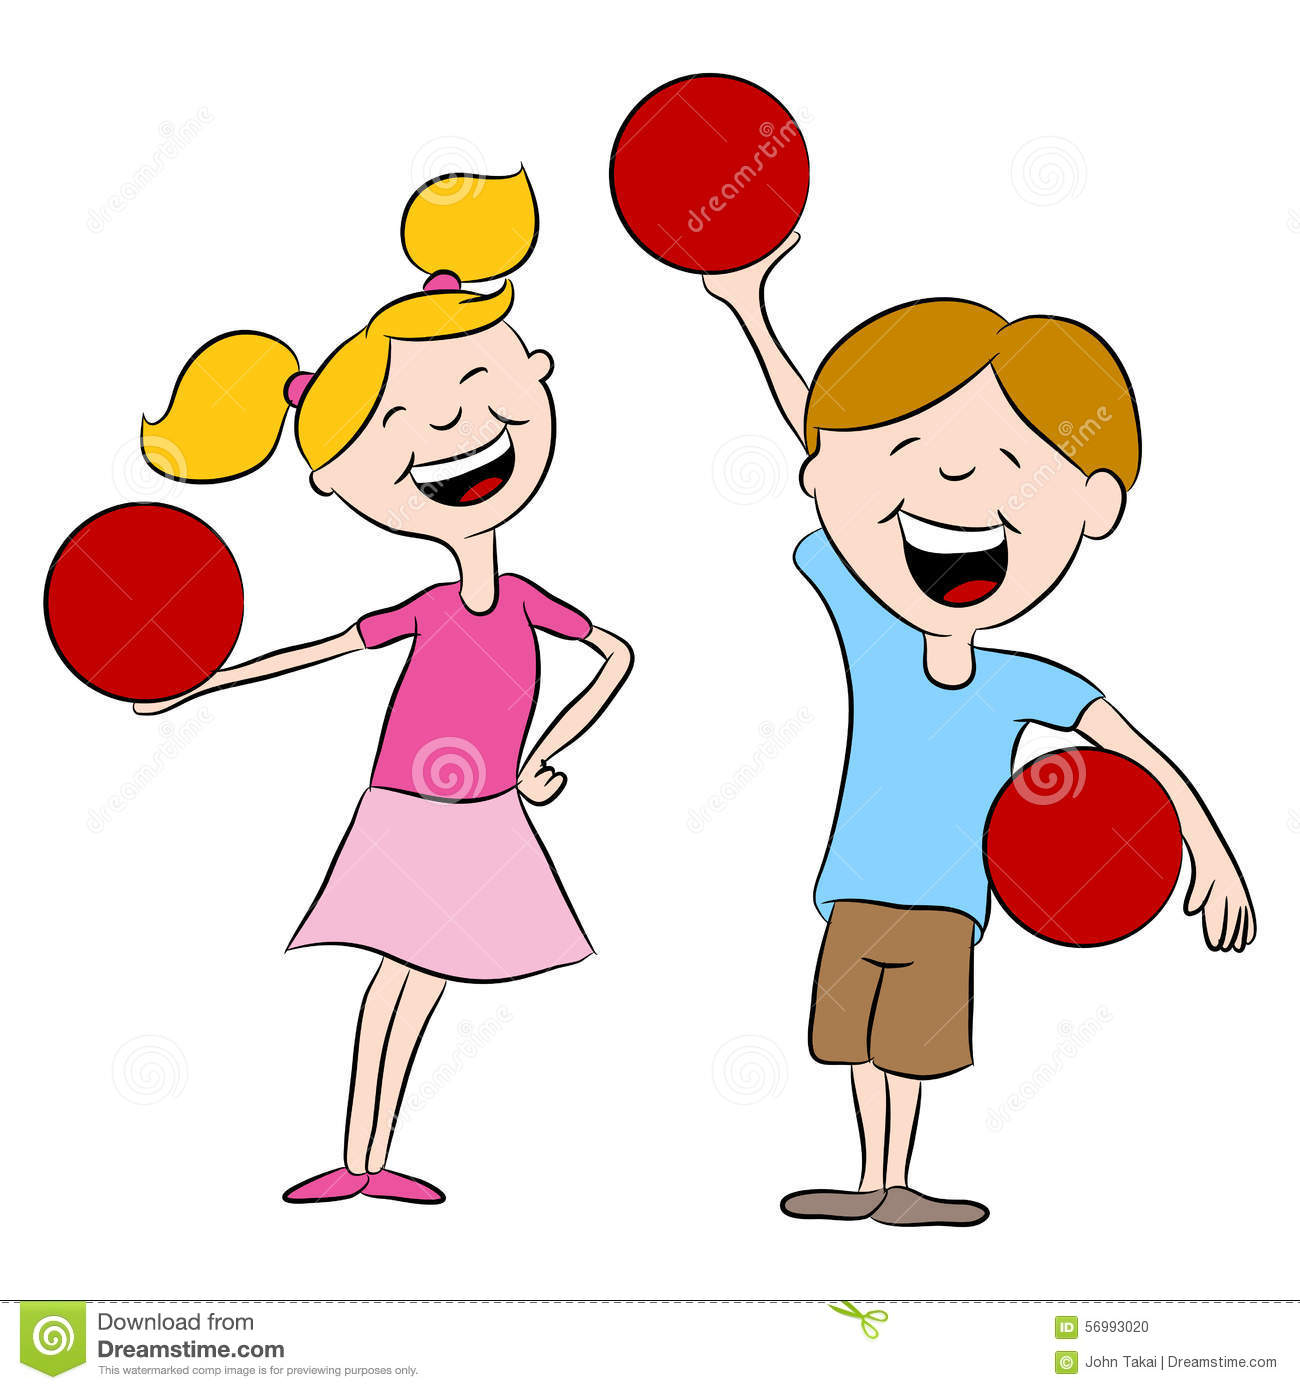 Clip Art Dodgeball Clipart dodgeball stock illustrations 44 kids playing photo